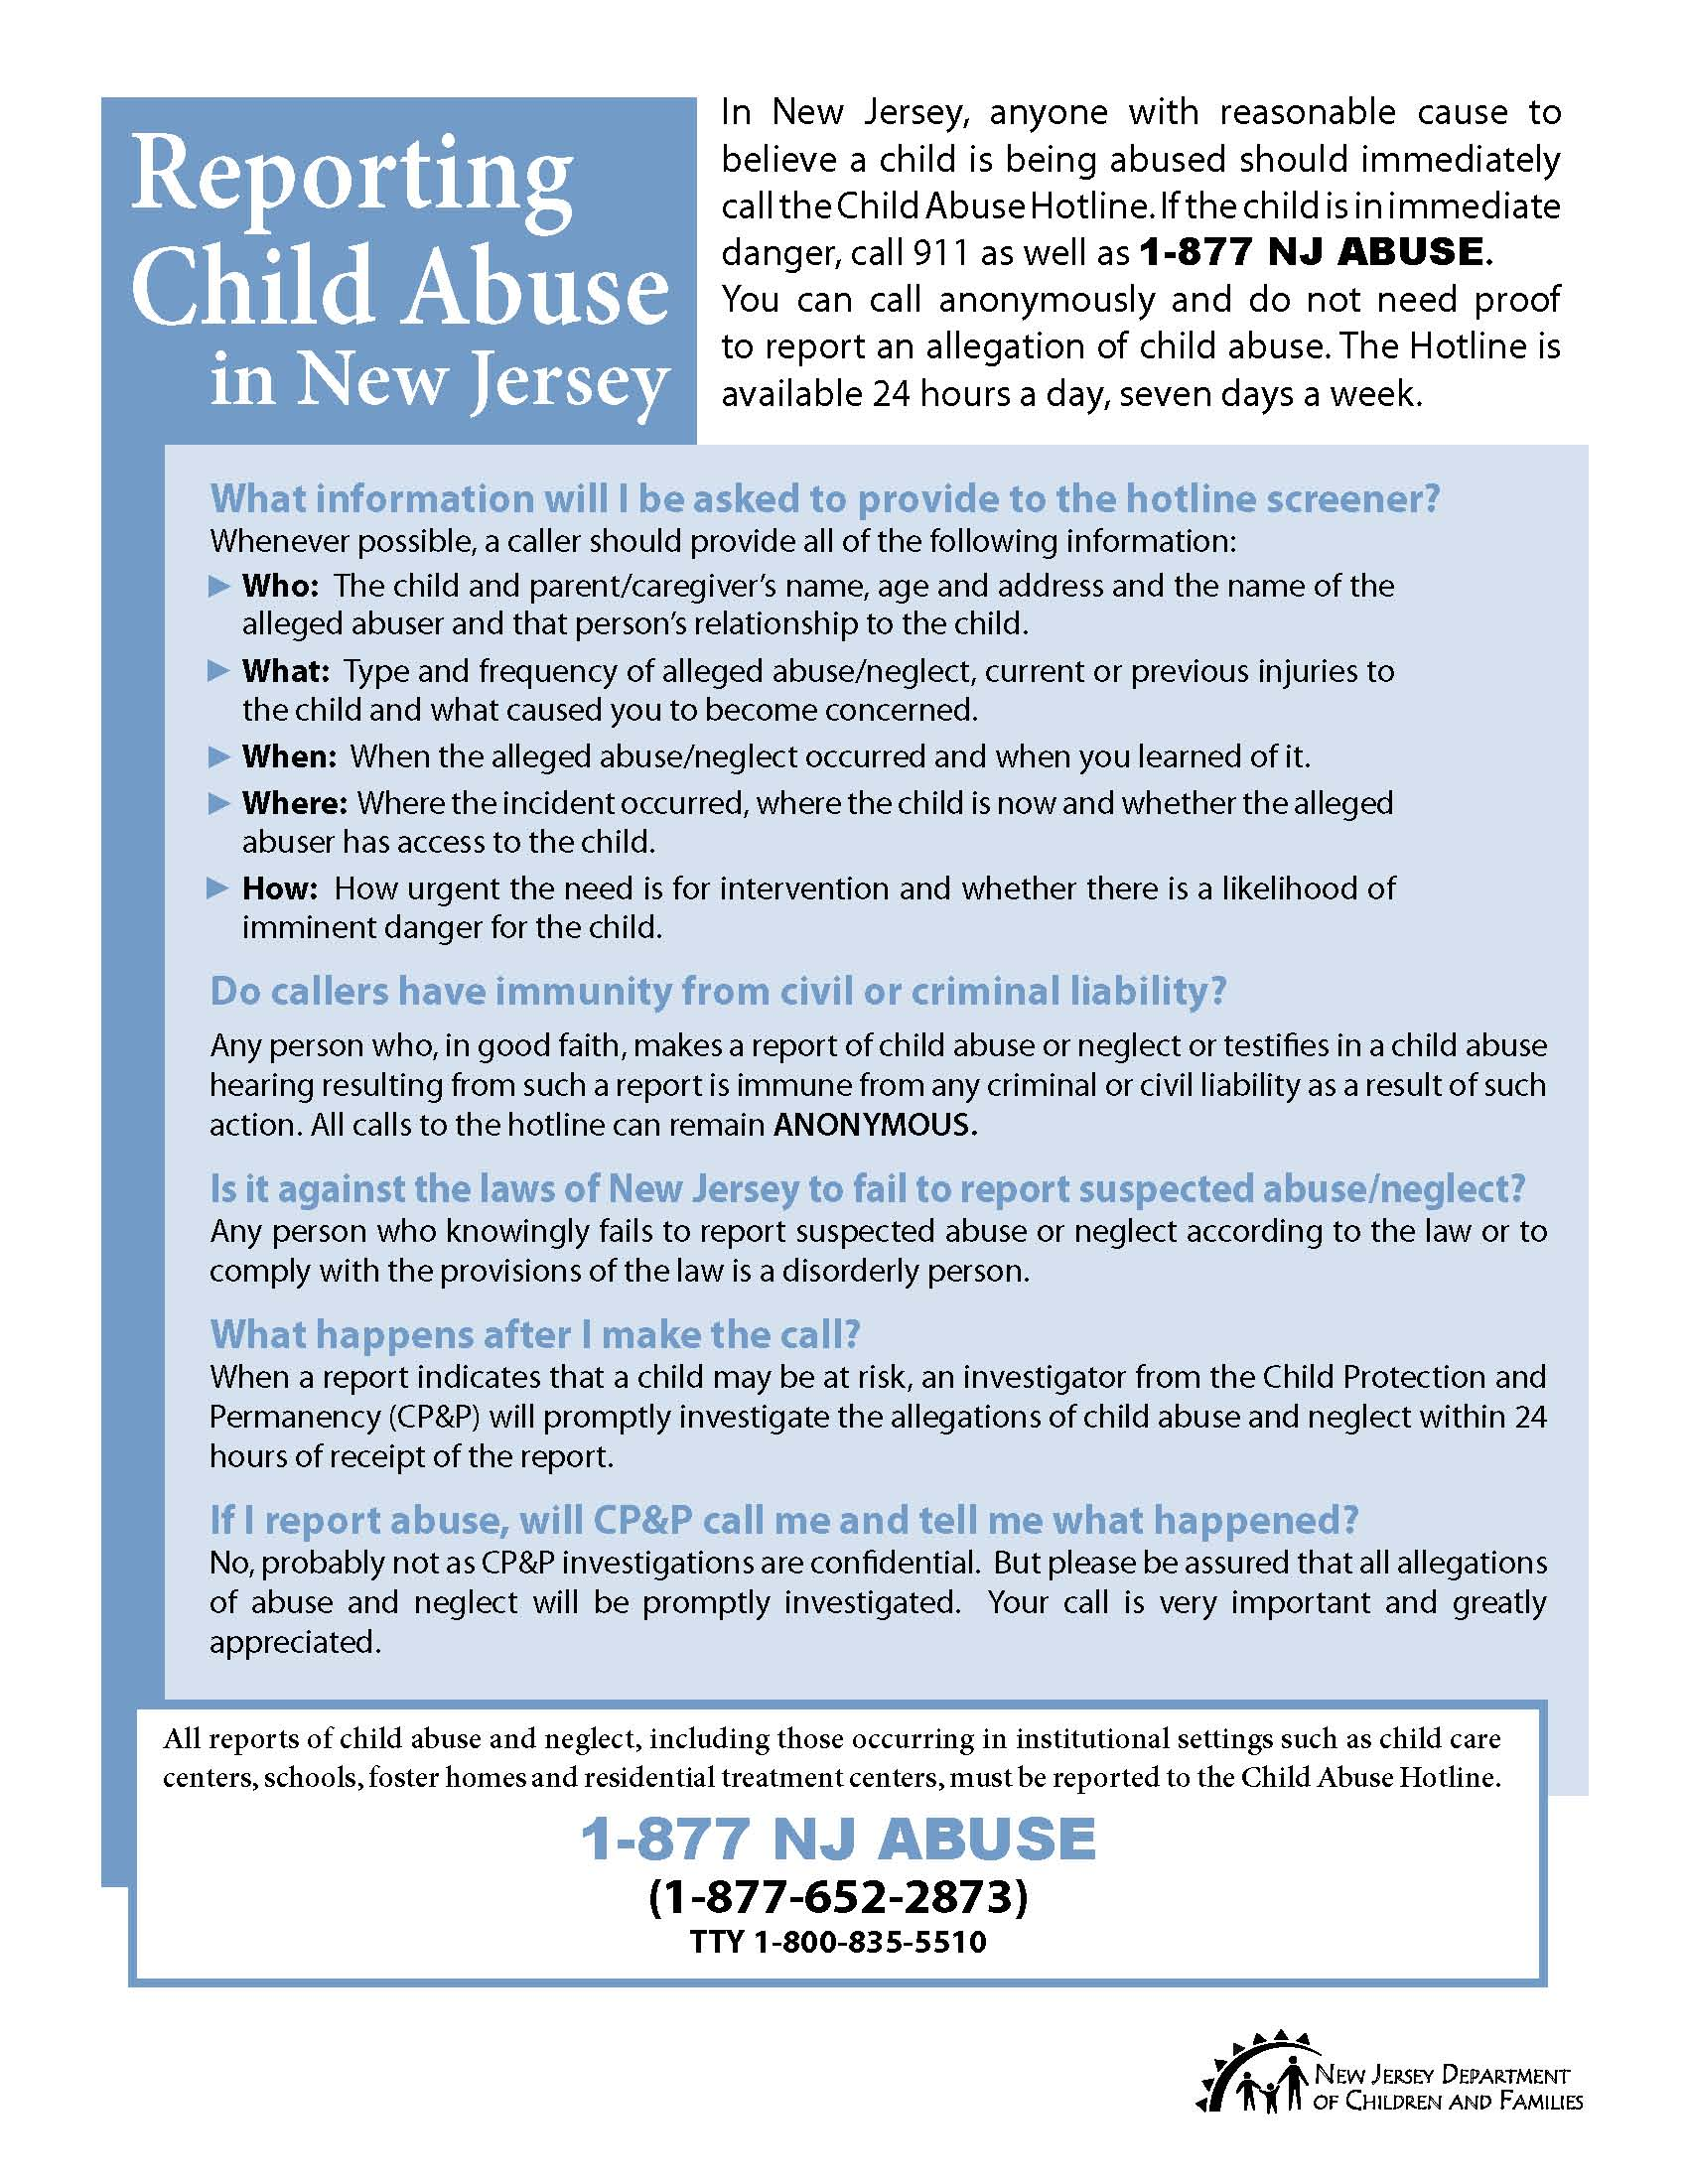 child abuse research paper body This paper is a review of research on psychological abuse in prevention disseminates summaries of selected research papers when writing about child abuse, always begin with an introduction to when writing about child abuse, always begin with an introduction to.